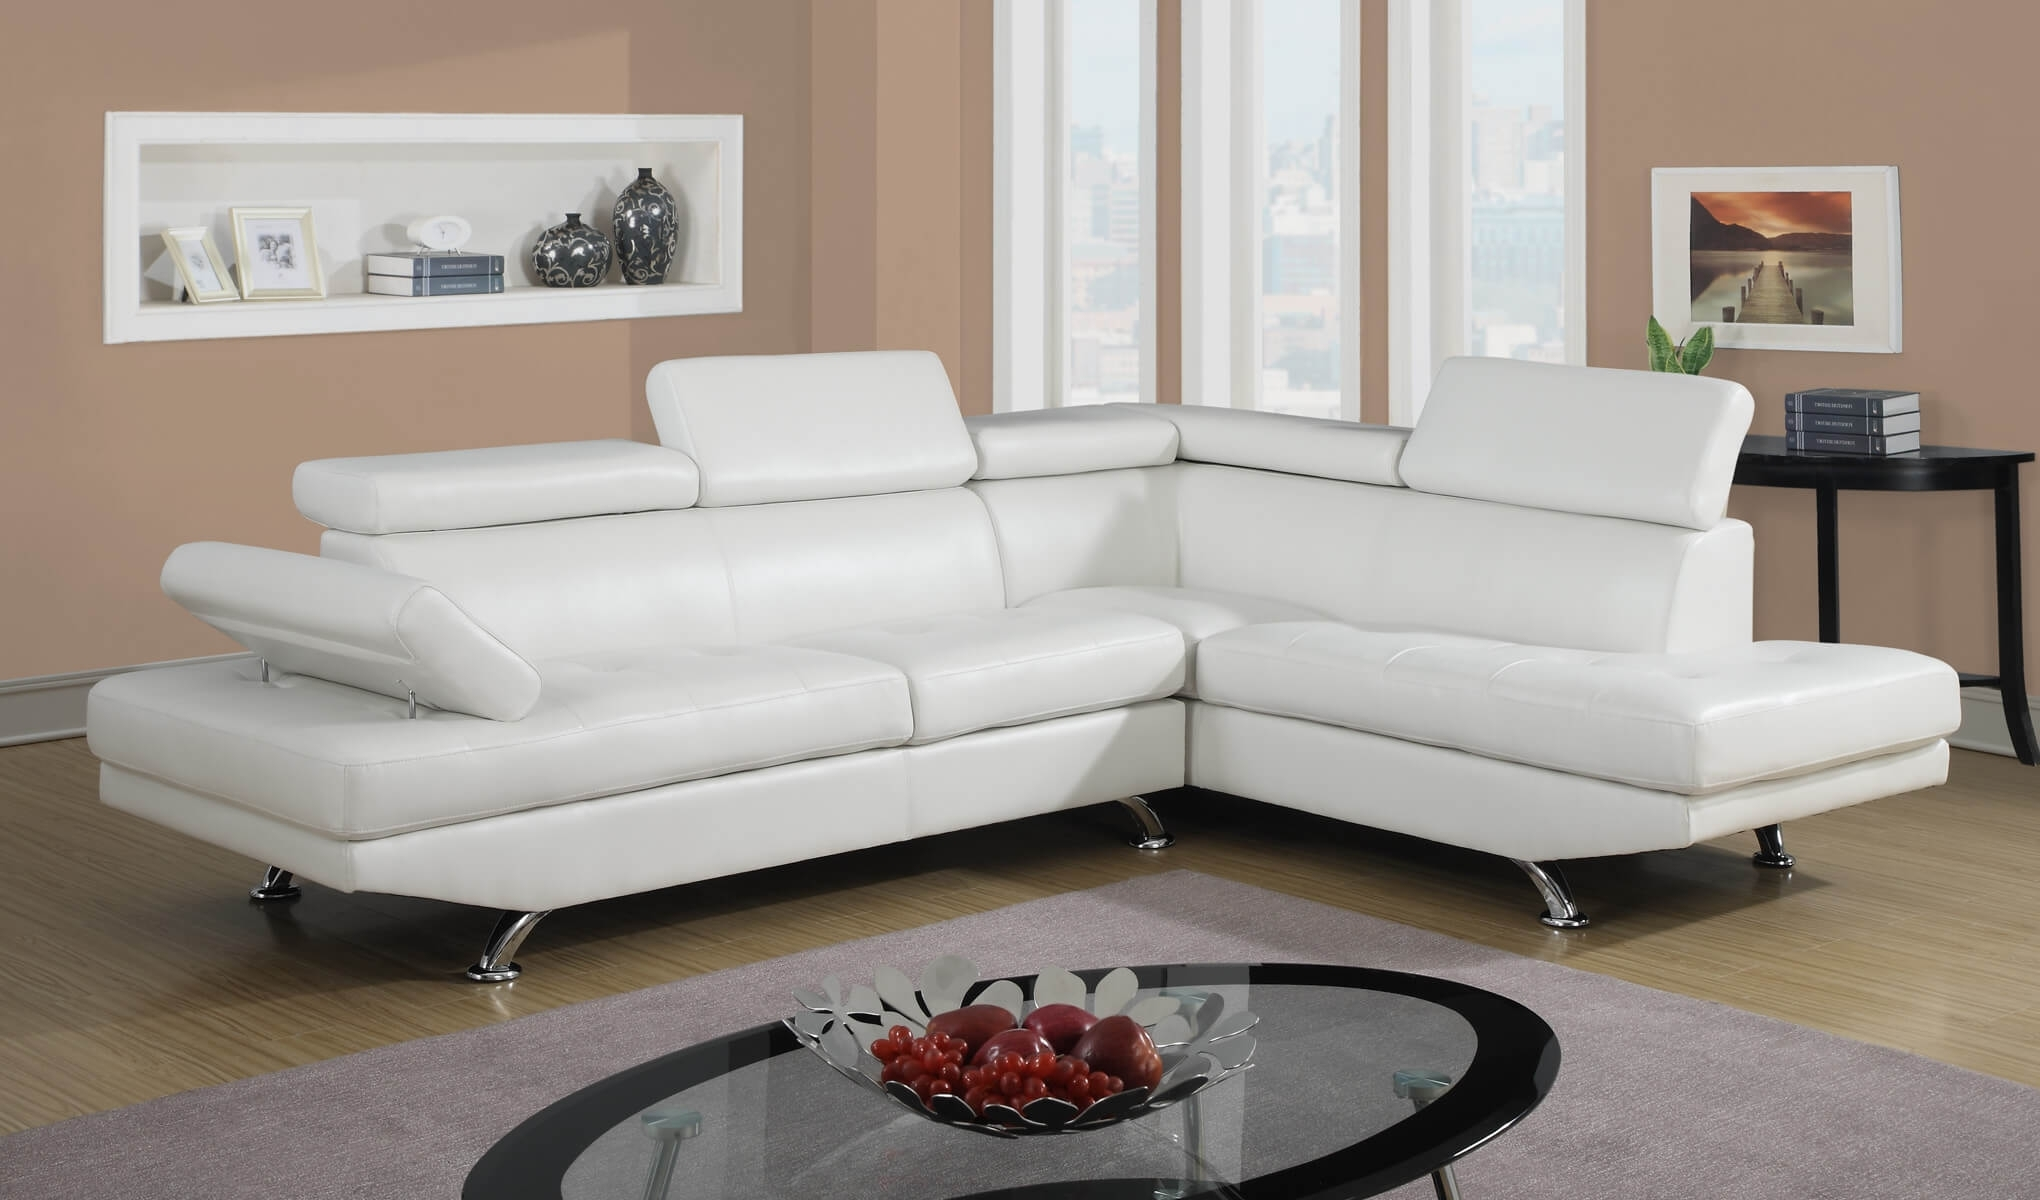 Recliners On Sale Canada 2018 Popular Canada Sale Sectional Sofas